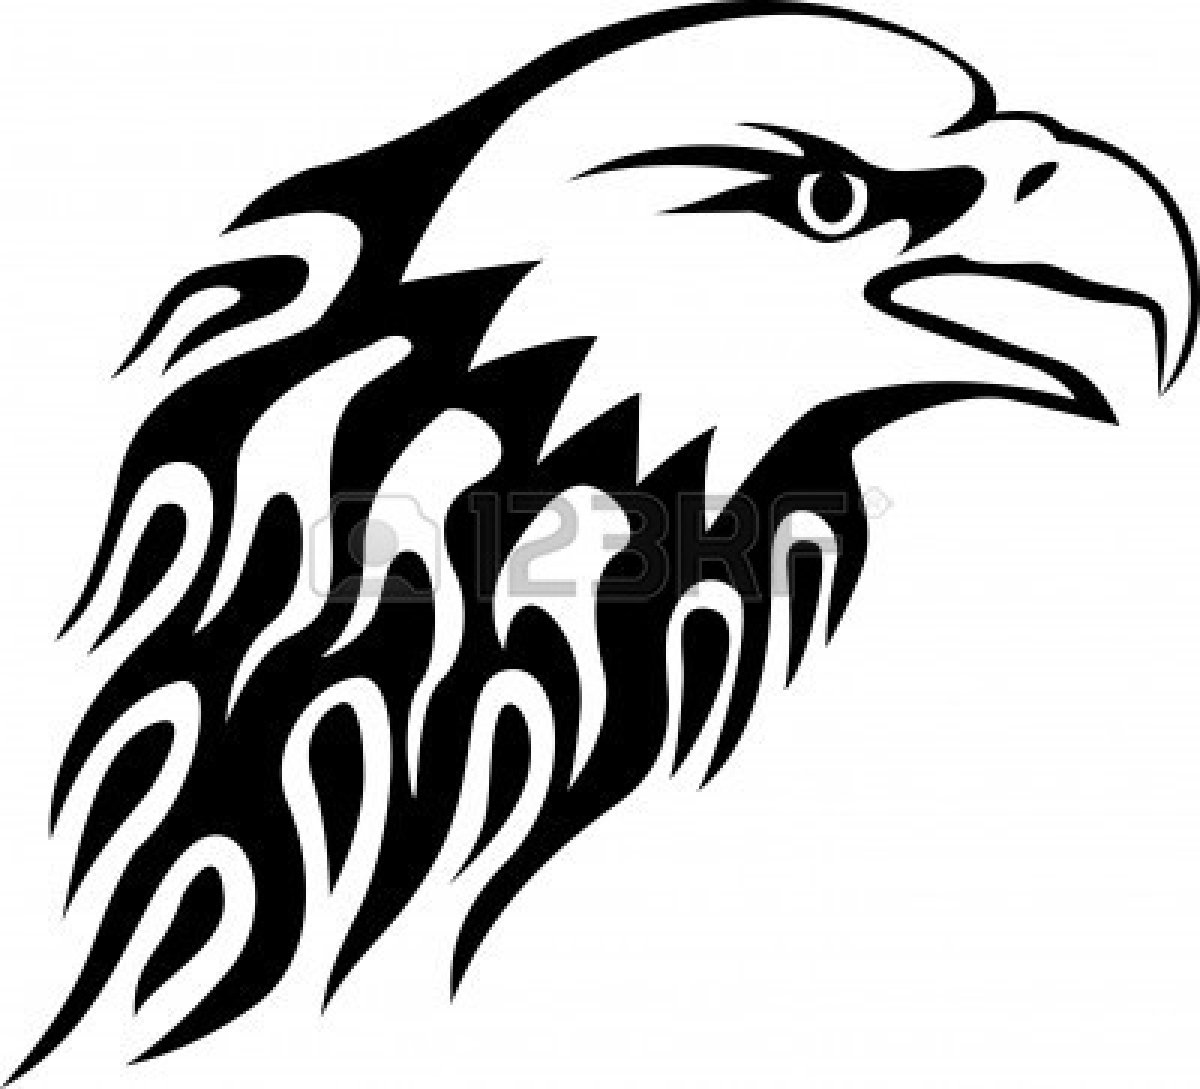 American bald eagle clipart black and white picture download Bald Eagle Clipart Black And White | Free download best Bald Eagle ... picture download